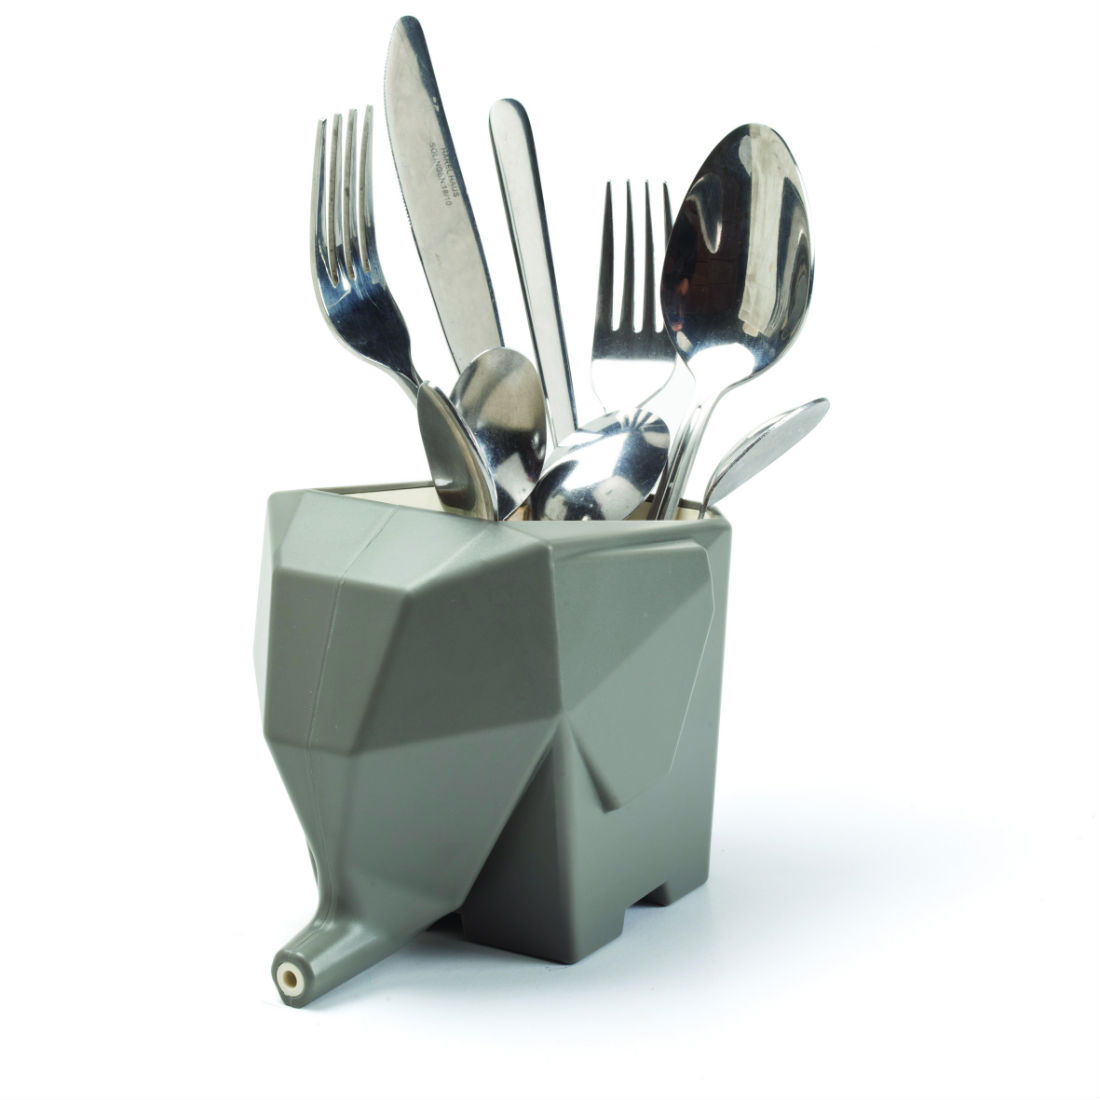 Jumbo Cutlery Drainer from brightblueliving.com